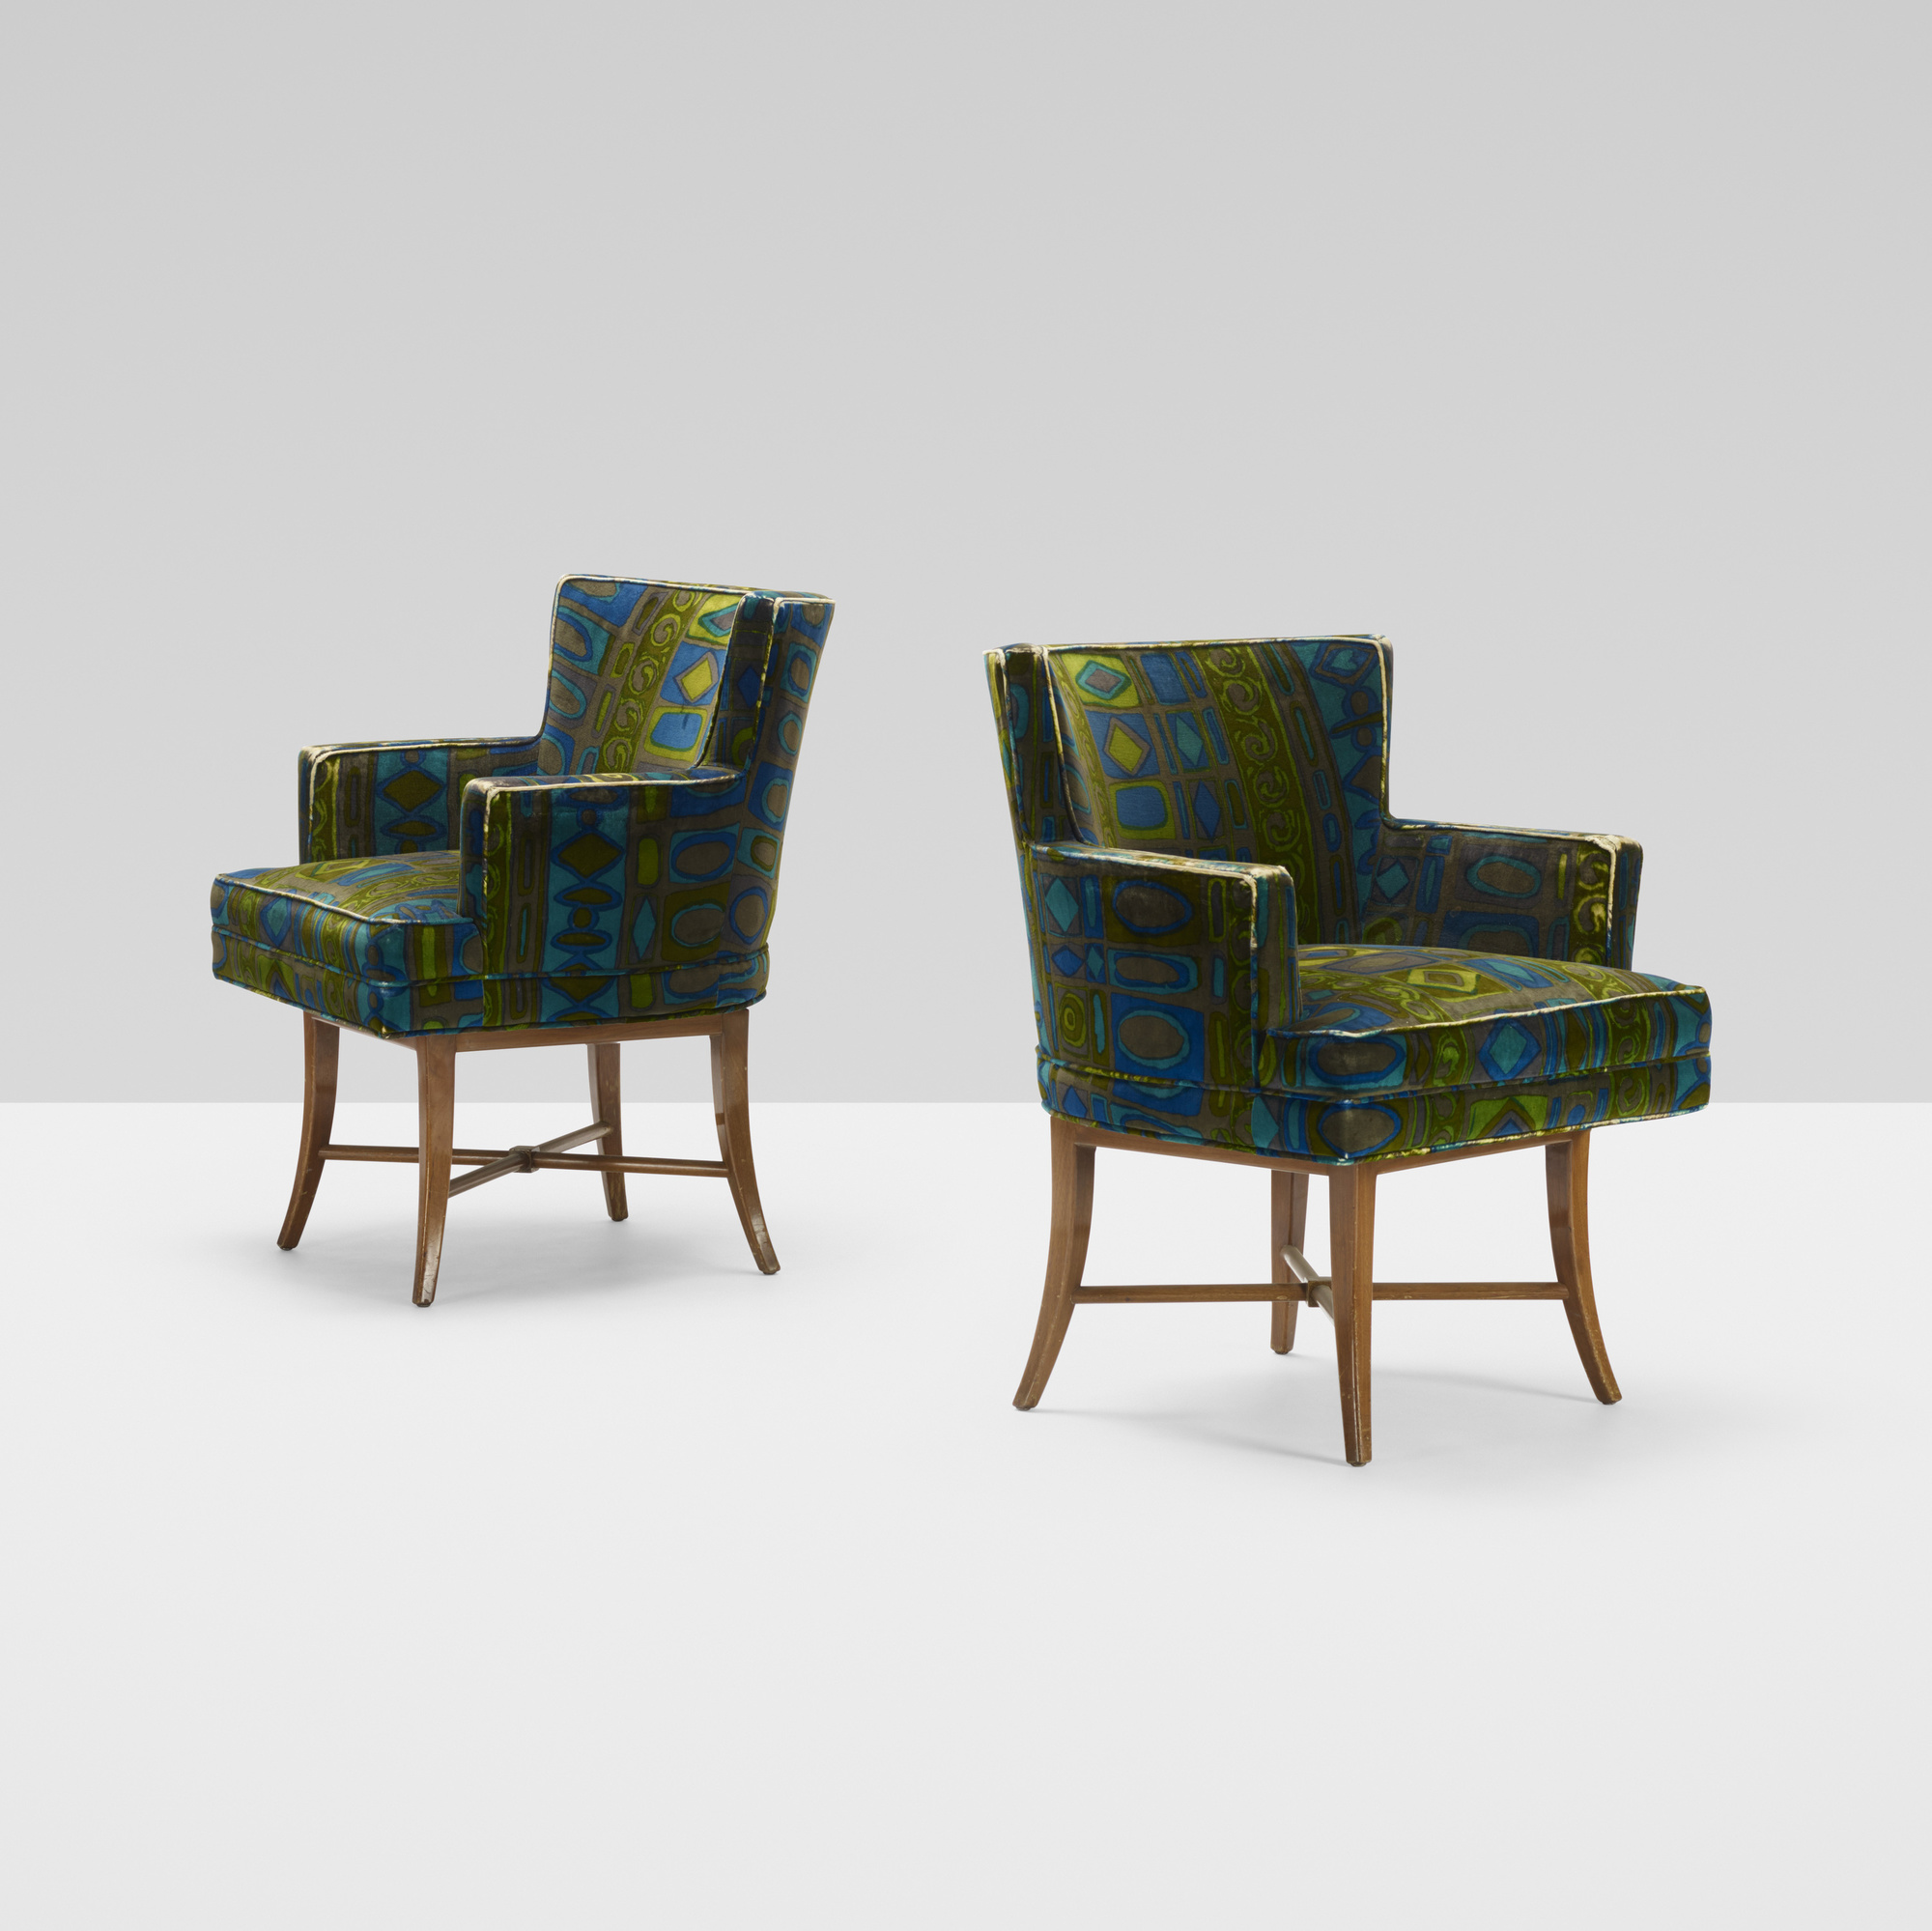 399: Tommi Parzinger / armchairs, pair (1 of 3)